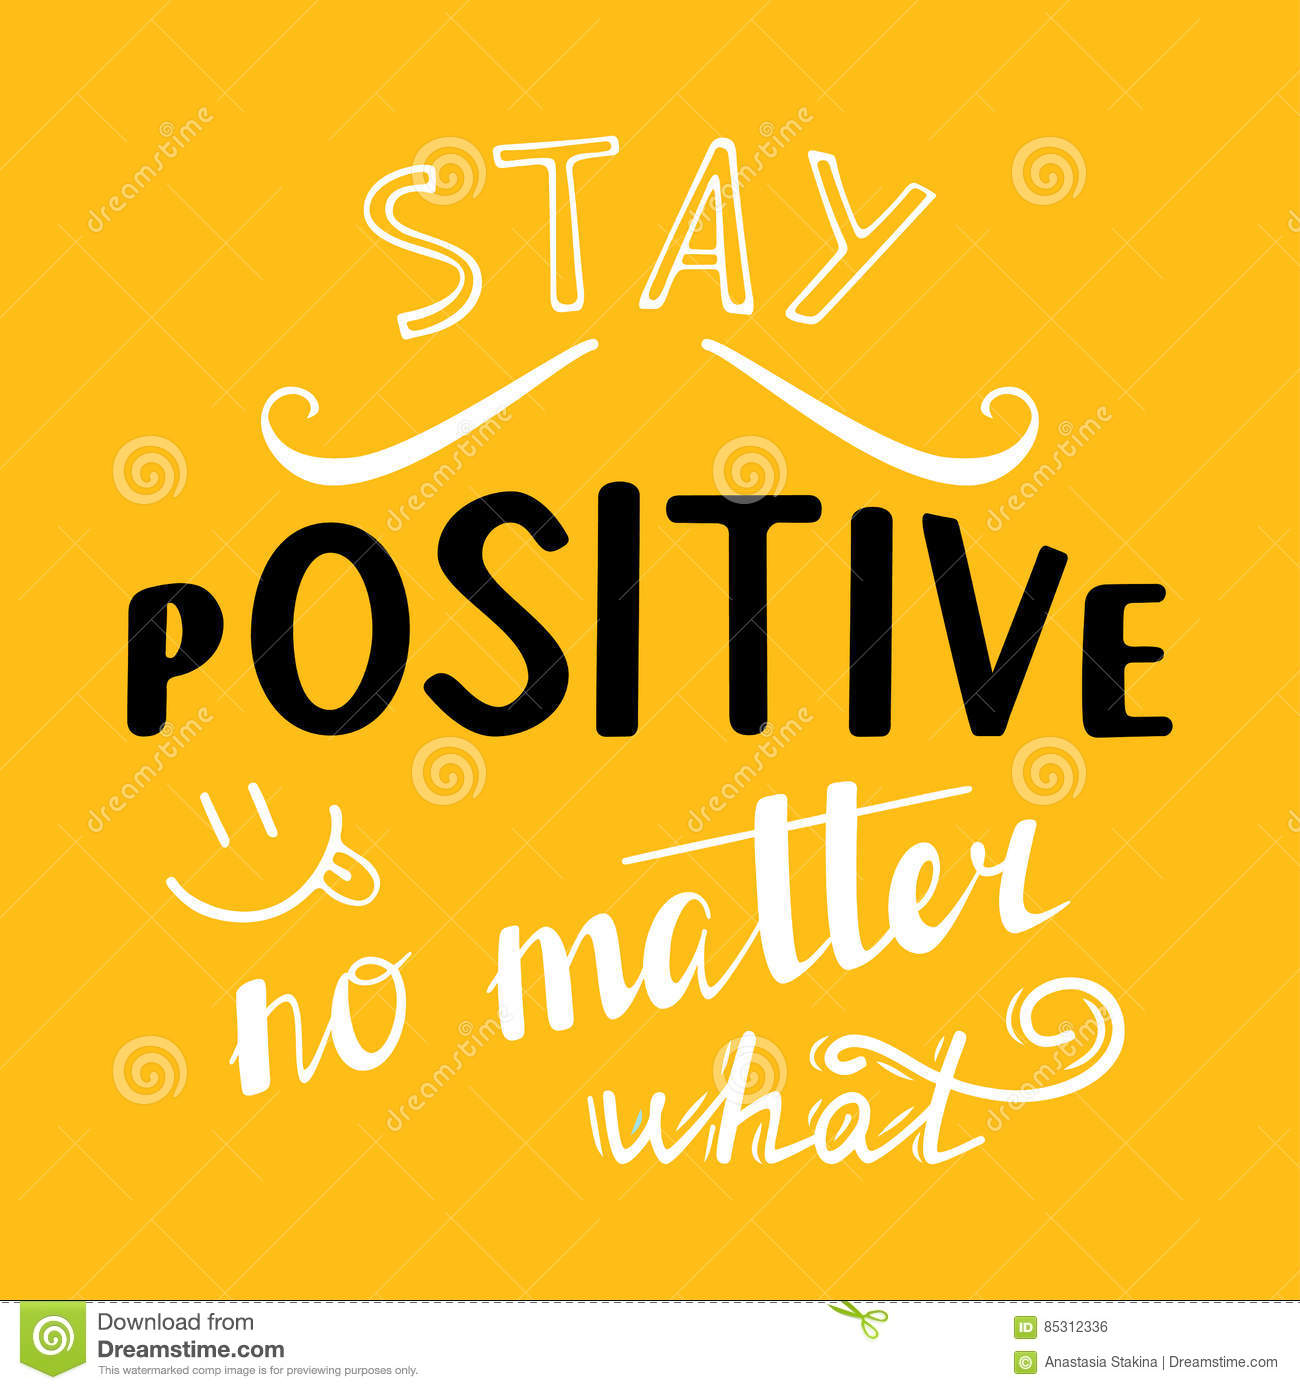 Stay Positive No Matter What Quotes: Stay Positive No Matter What Stock Vector